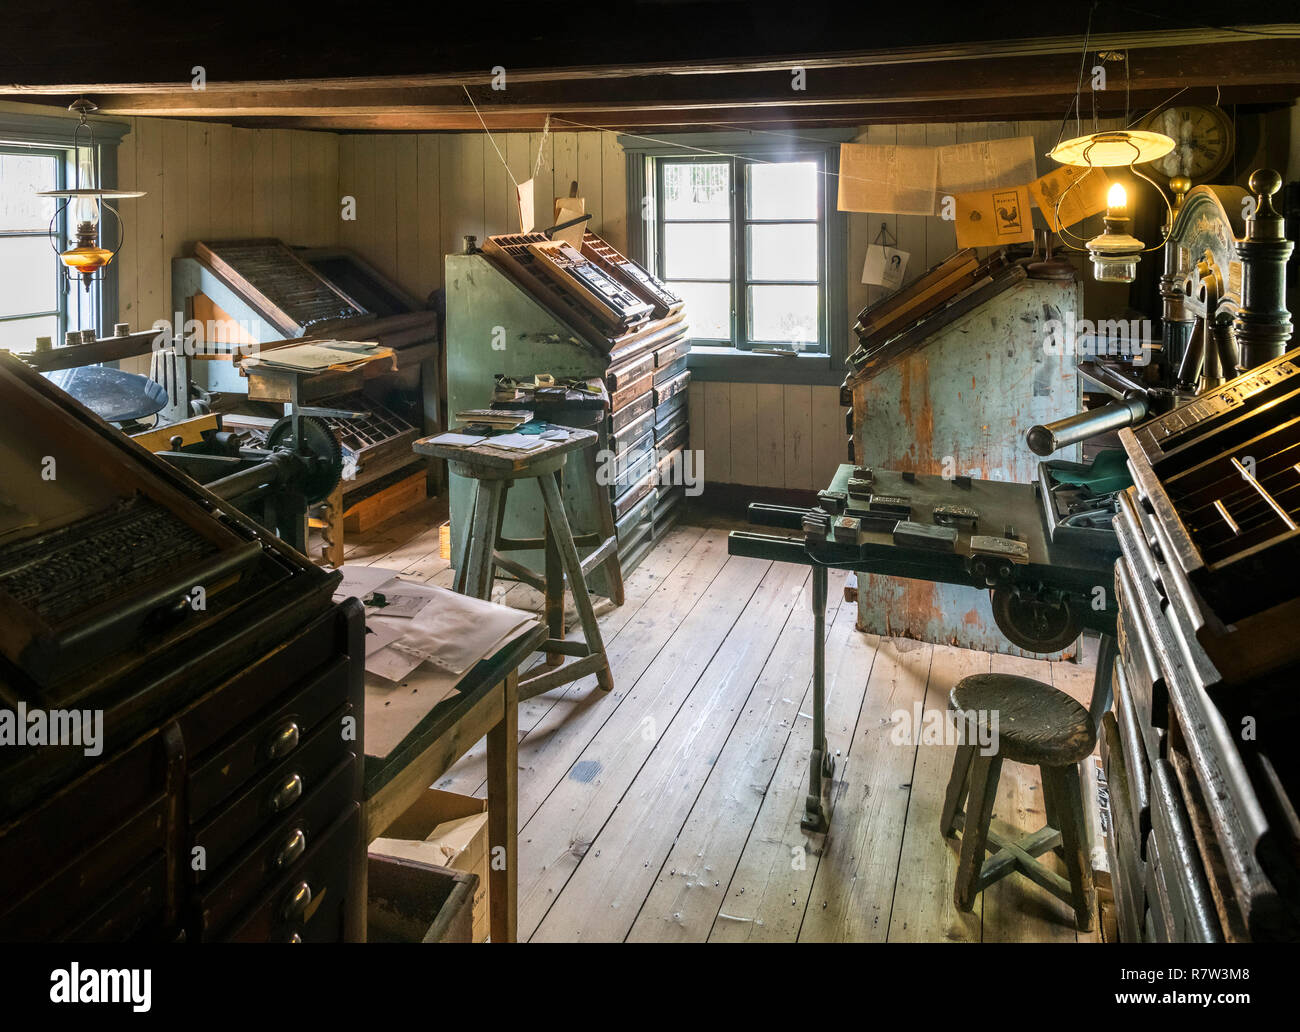 Print shop at the Luostarinmäki Handicrafts Museum, an area of 200 year old wooden buildings which survived the fire of 1827, Turku, Finland - Stock Image